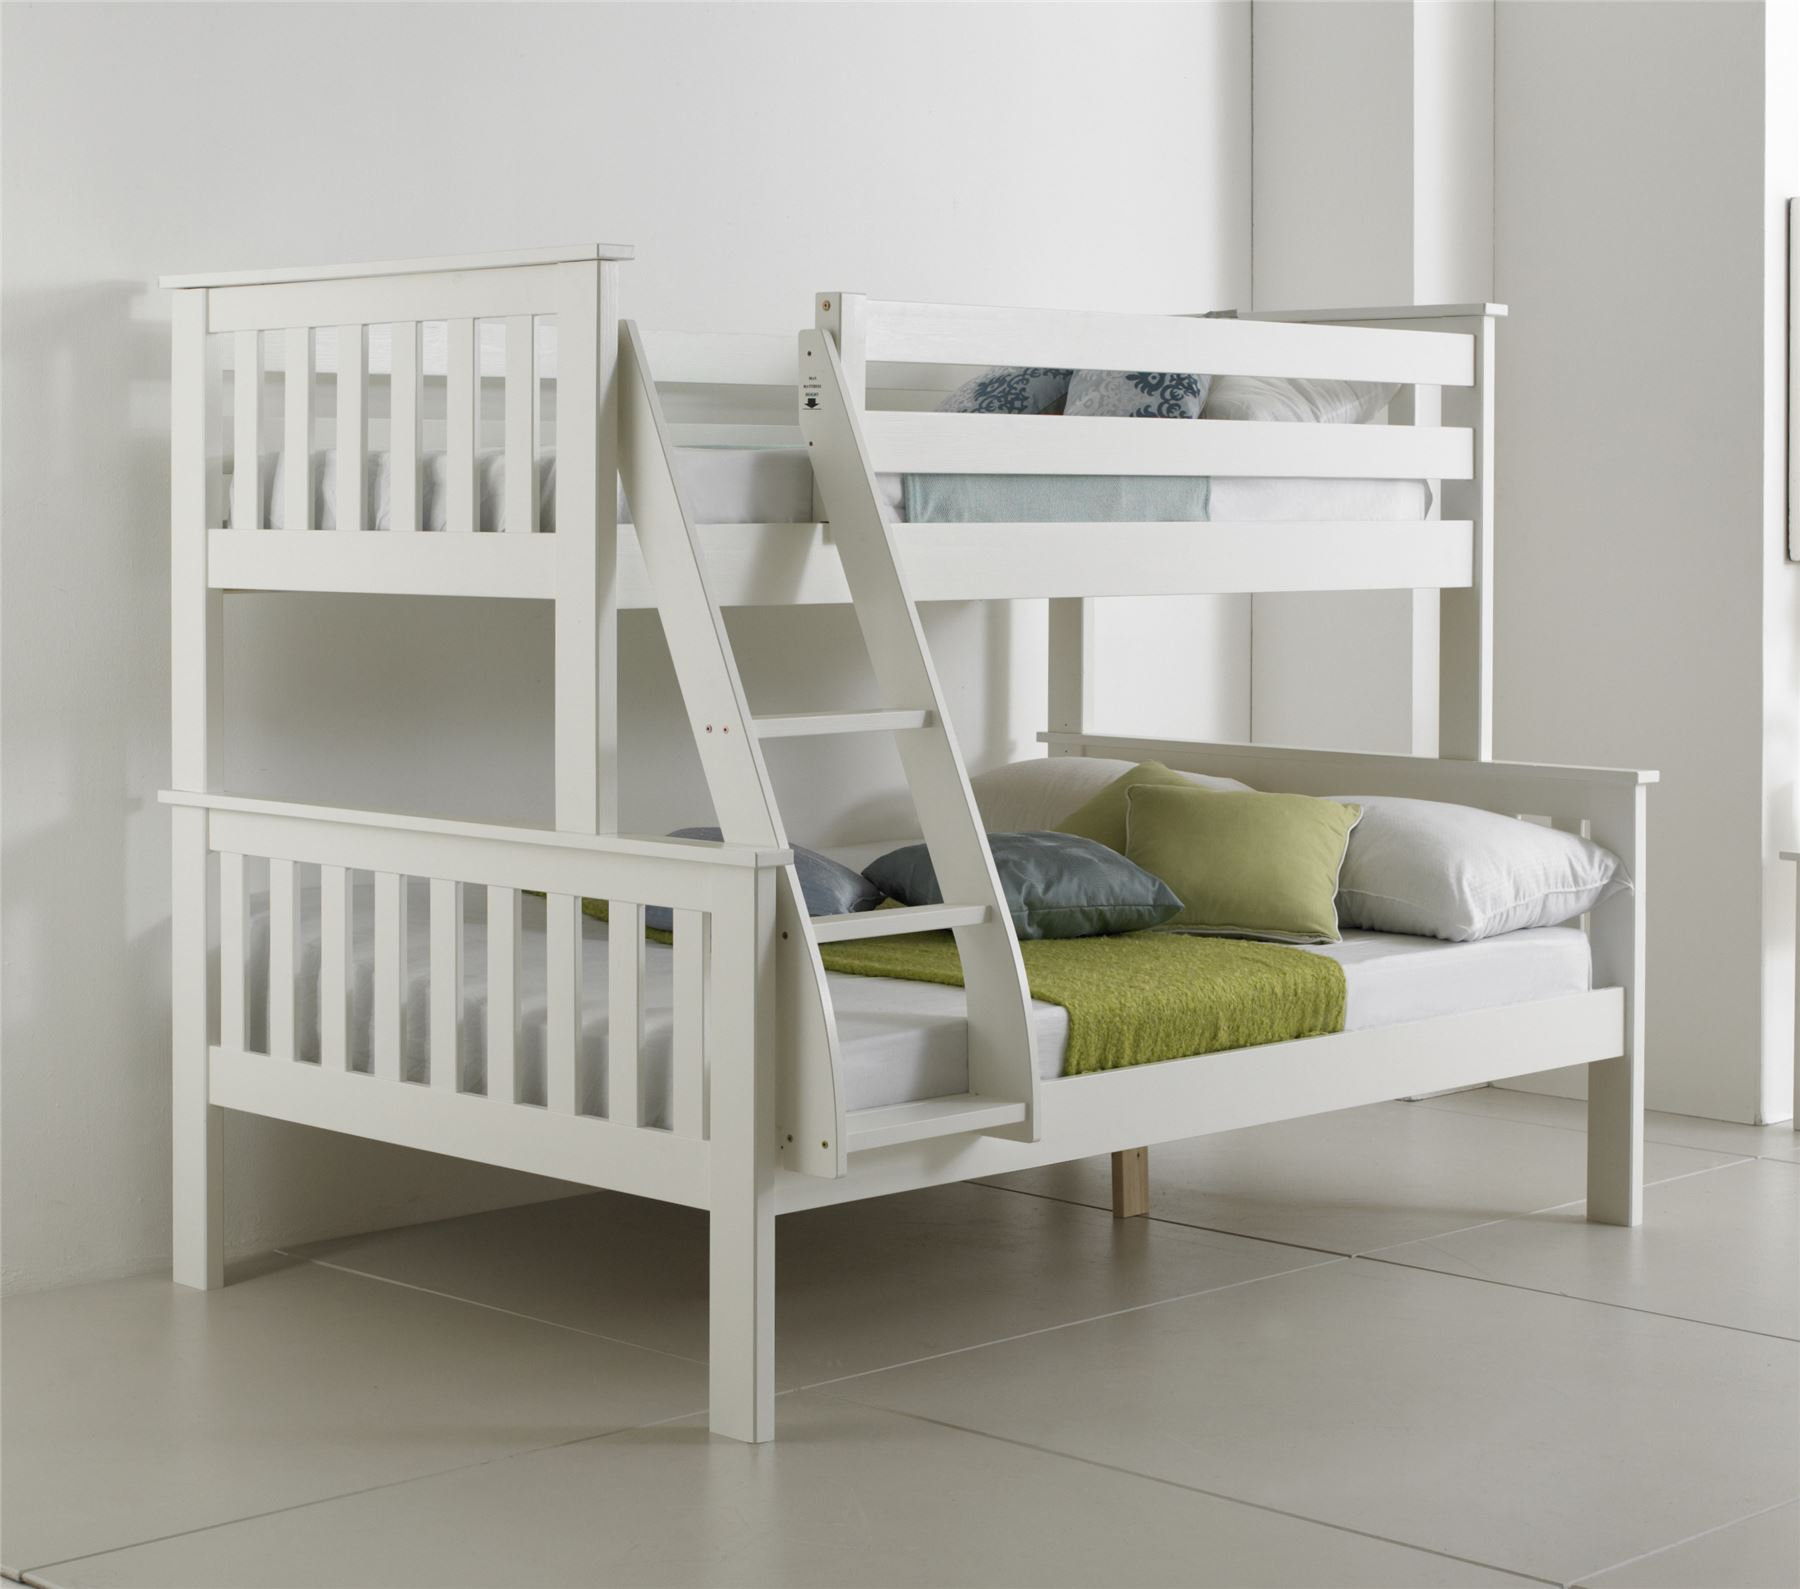 bluemoon beds 4ft atlantis triple sleeper bunk bed solid pine 2xluxury mattress ebay. Black Bedroom Furniture Sets. Home Design Ideas